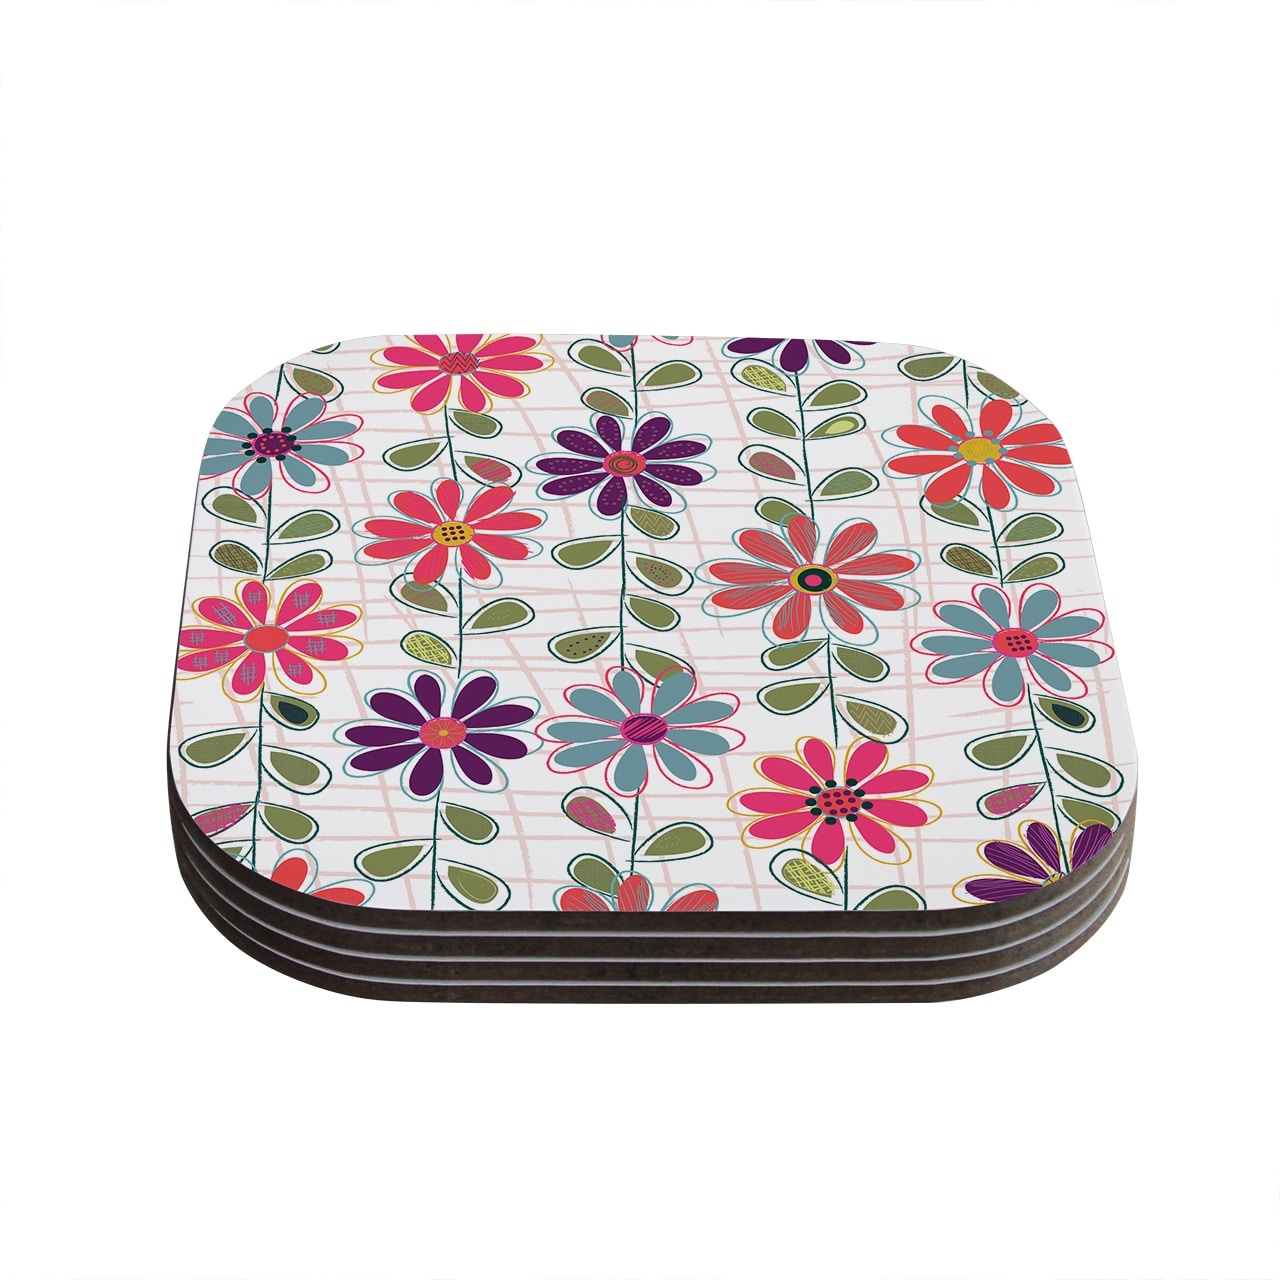 Kess InHouse  Jolene Heckman 'Fall Flowers' Floral Coasters (Pack of 4)